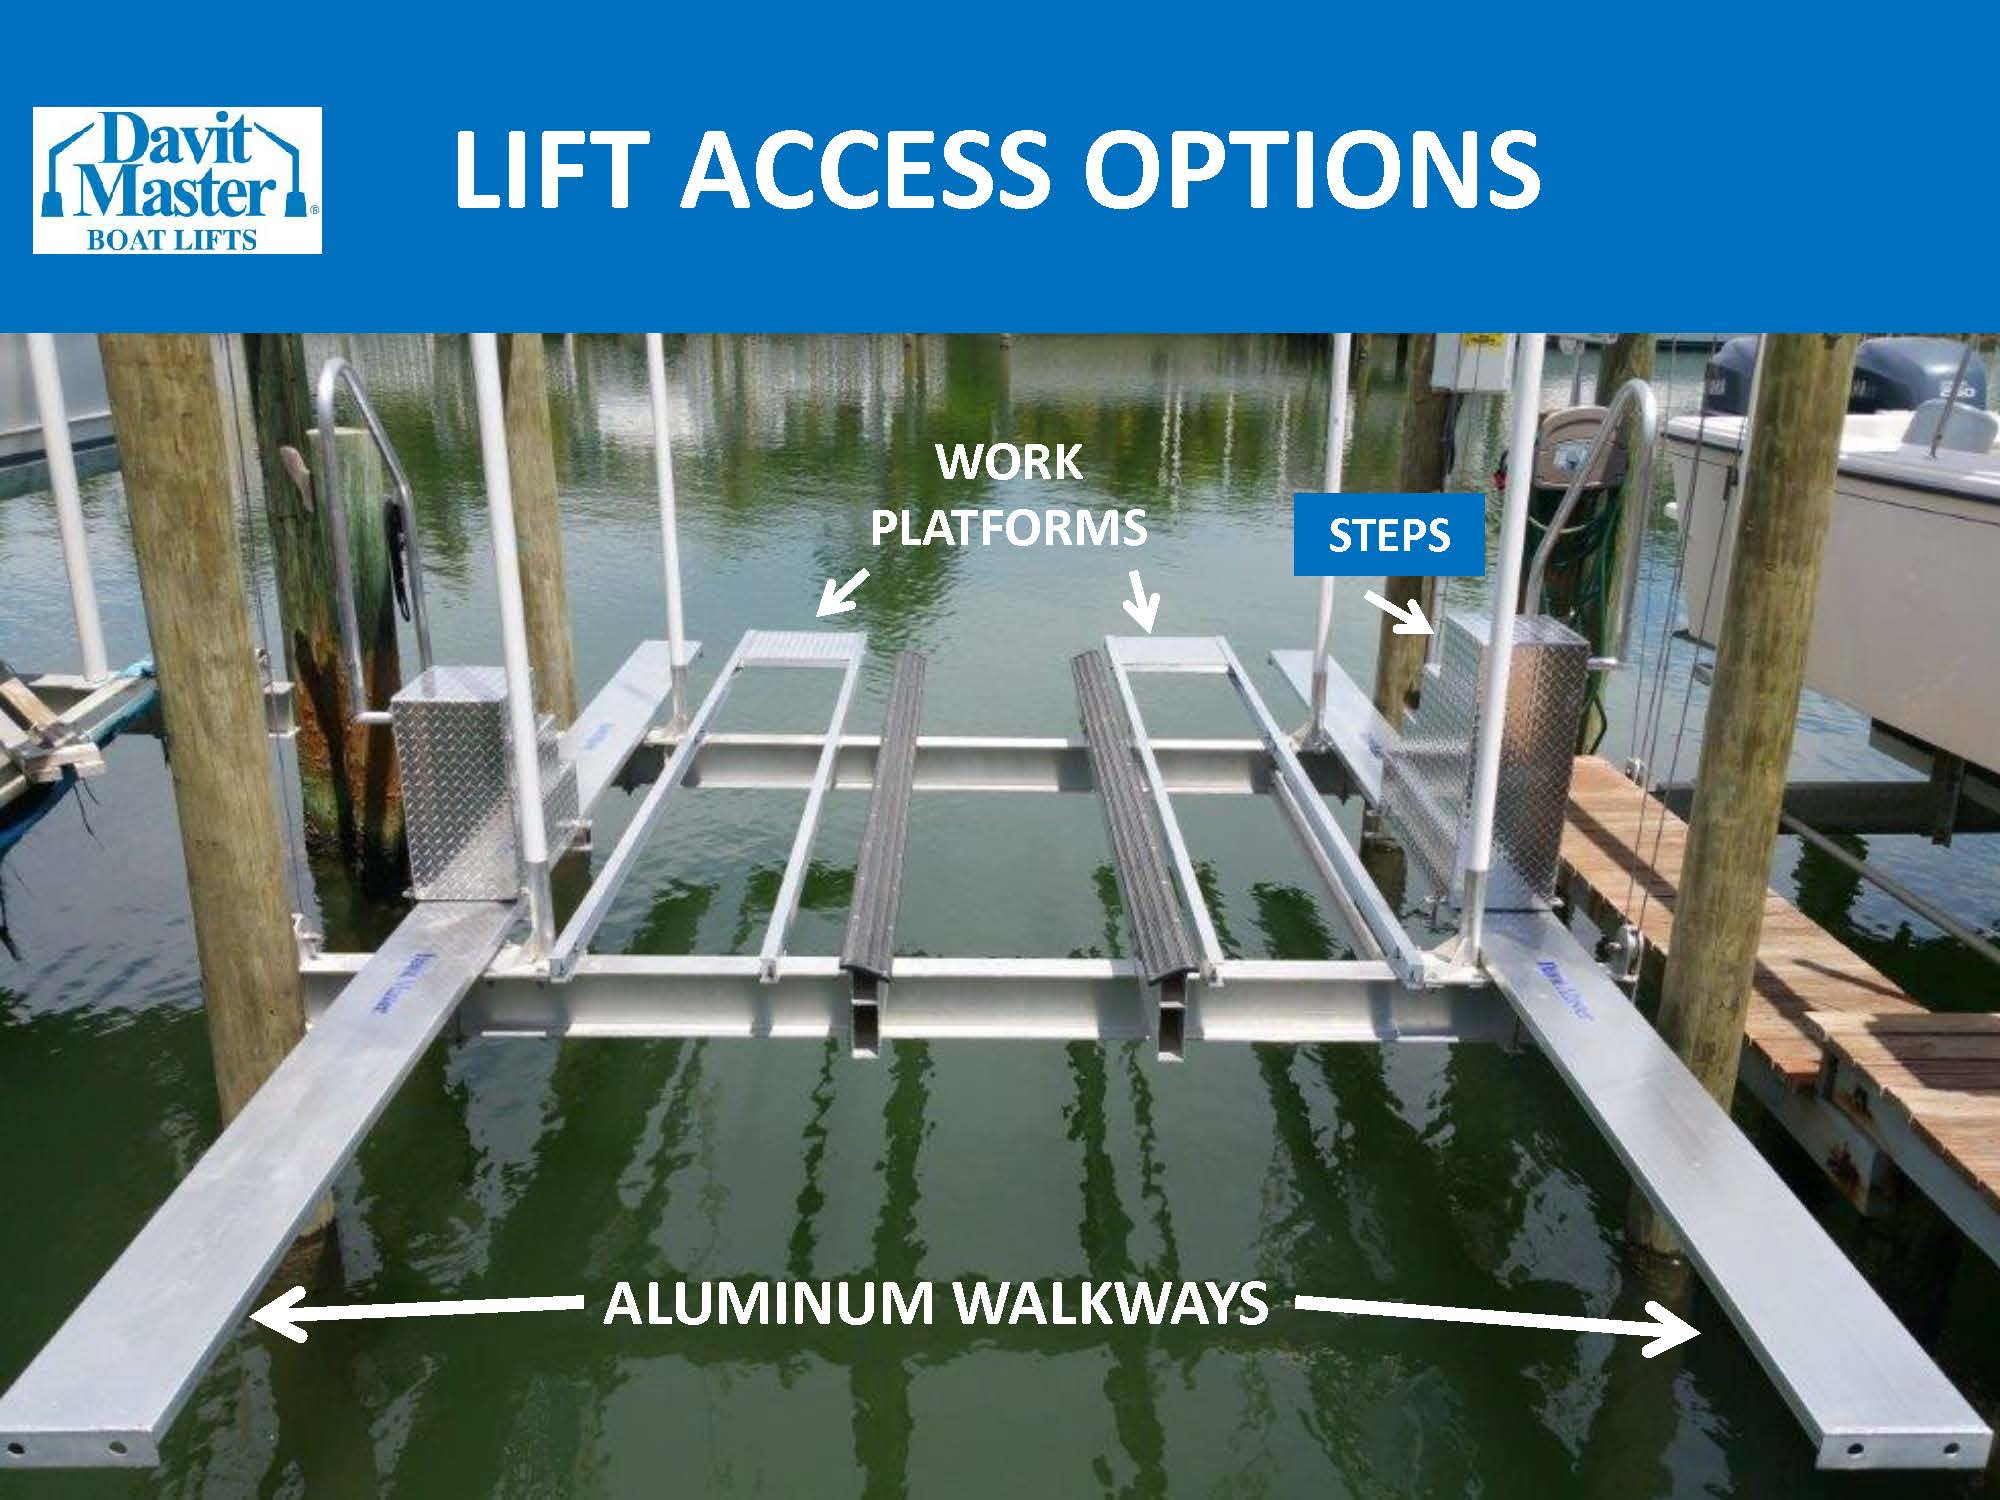 hight resolution of these boat access products including work platforms aluminum walkways steps and boarding platforms come in mighty handy